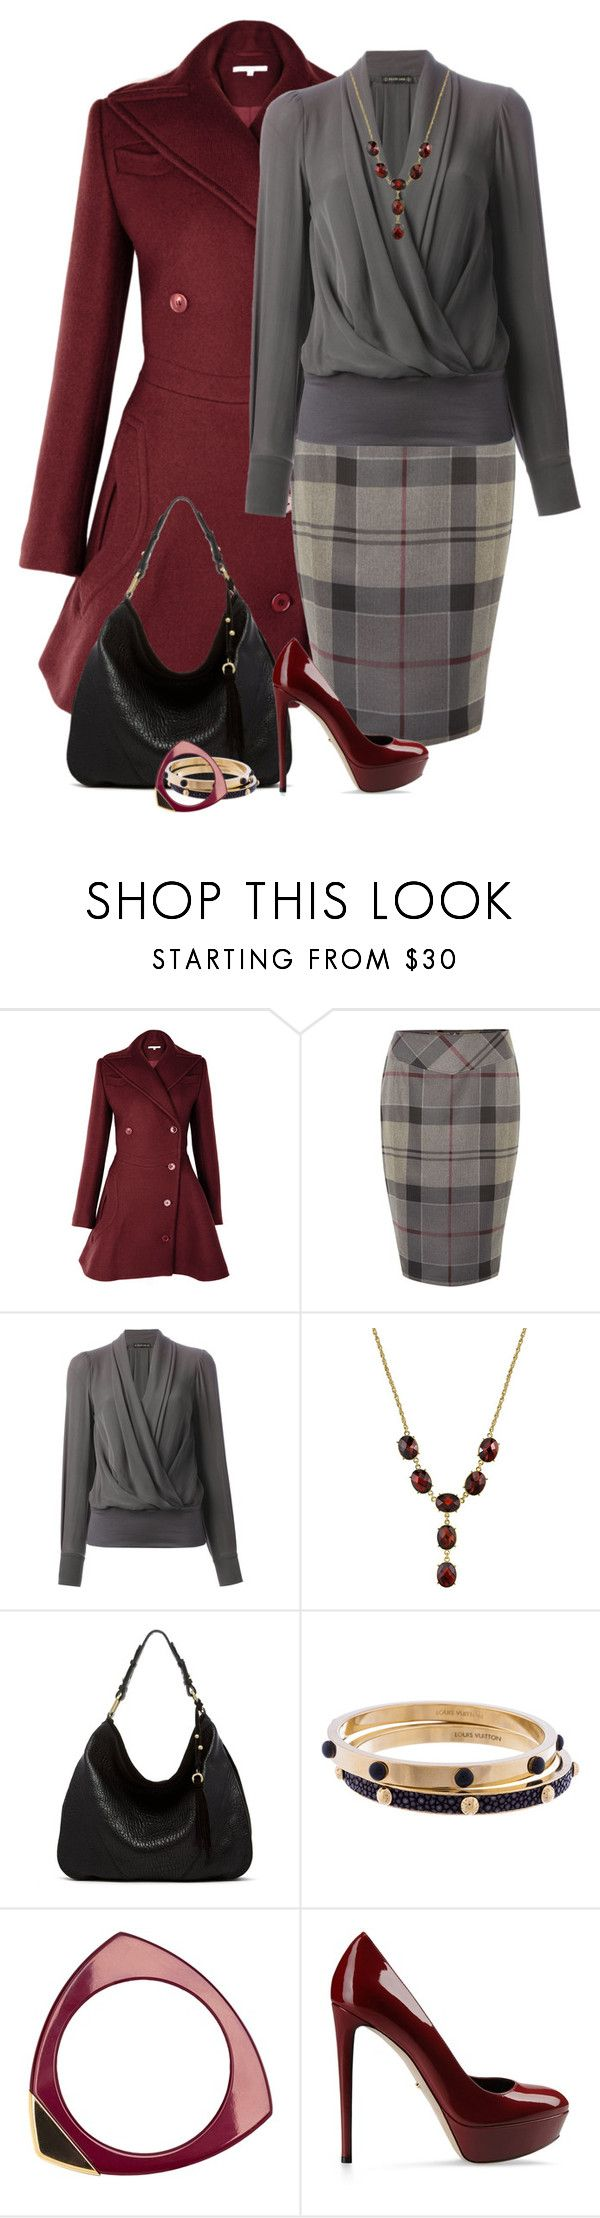 Red Bouquet by meltog on Polyvore featuring Plein Sud, Barbour, Sergio Rossi, Ella Moss, Louis Vuitton and 1928